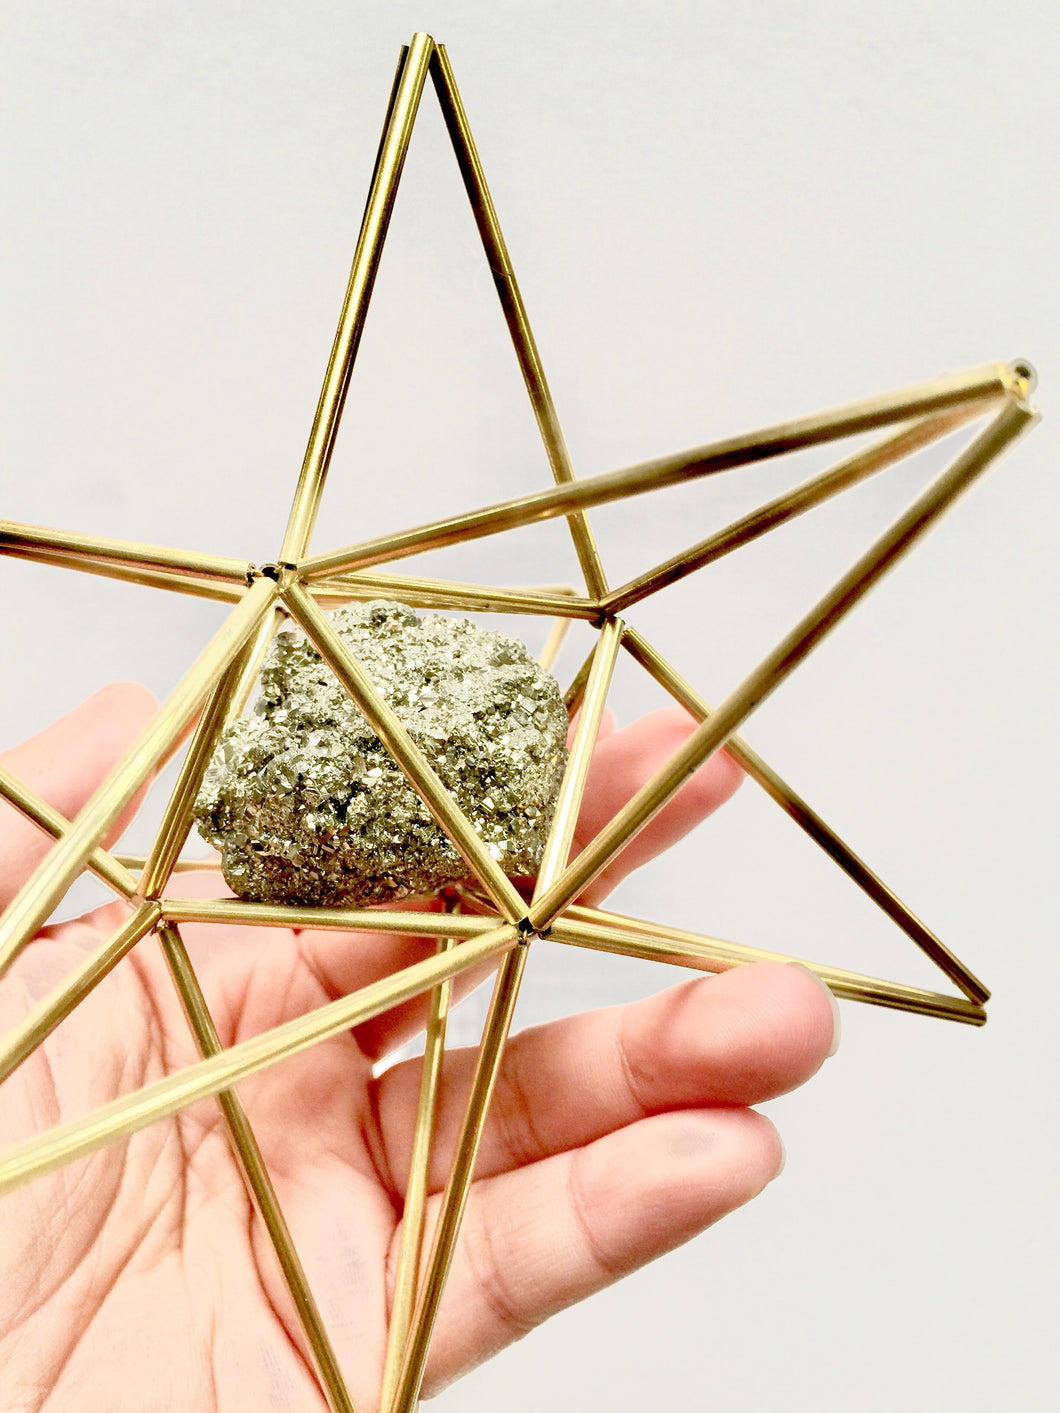 Star Tetrahedron with Pyrite